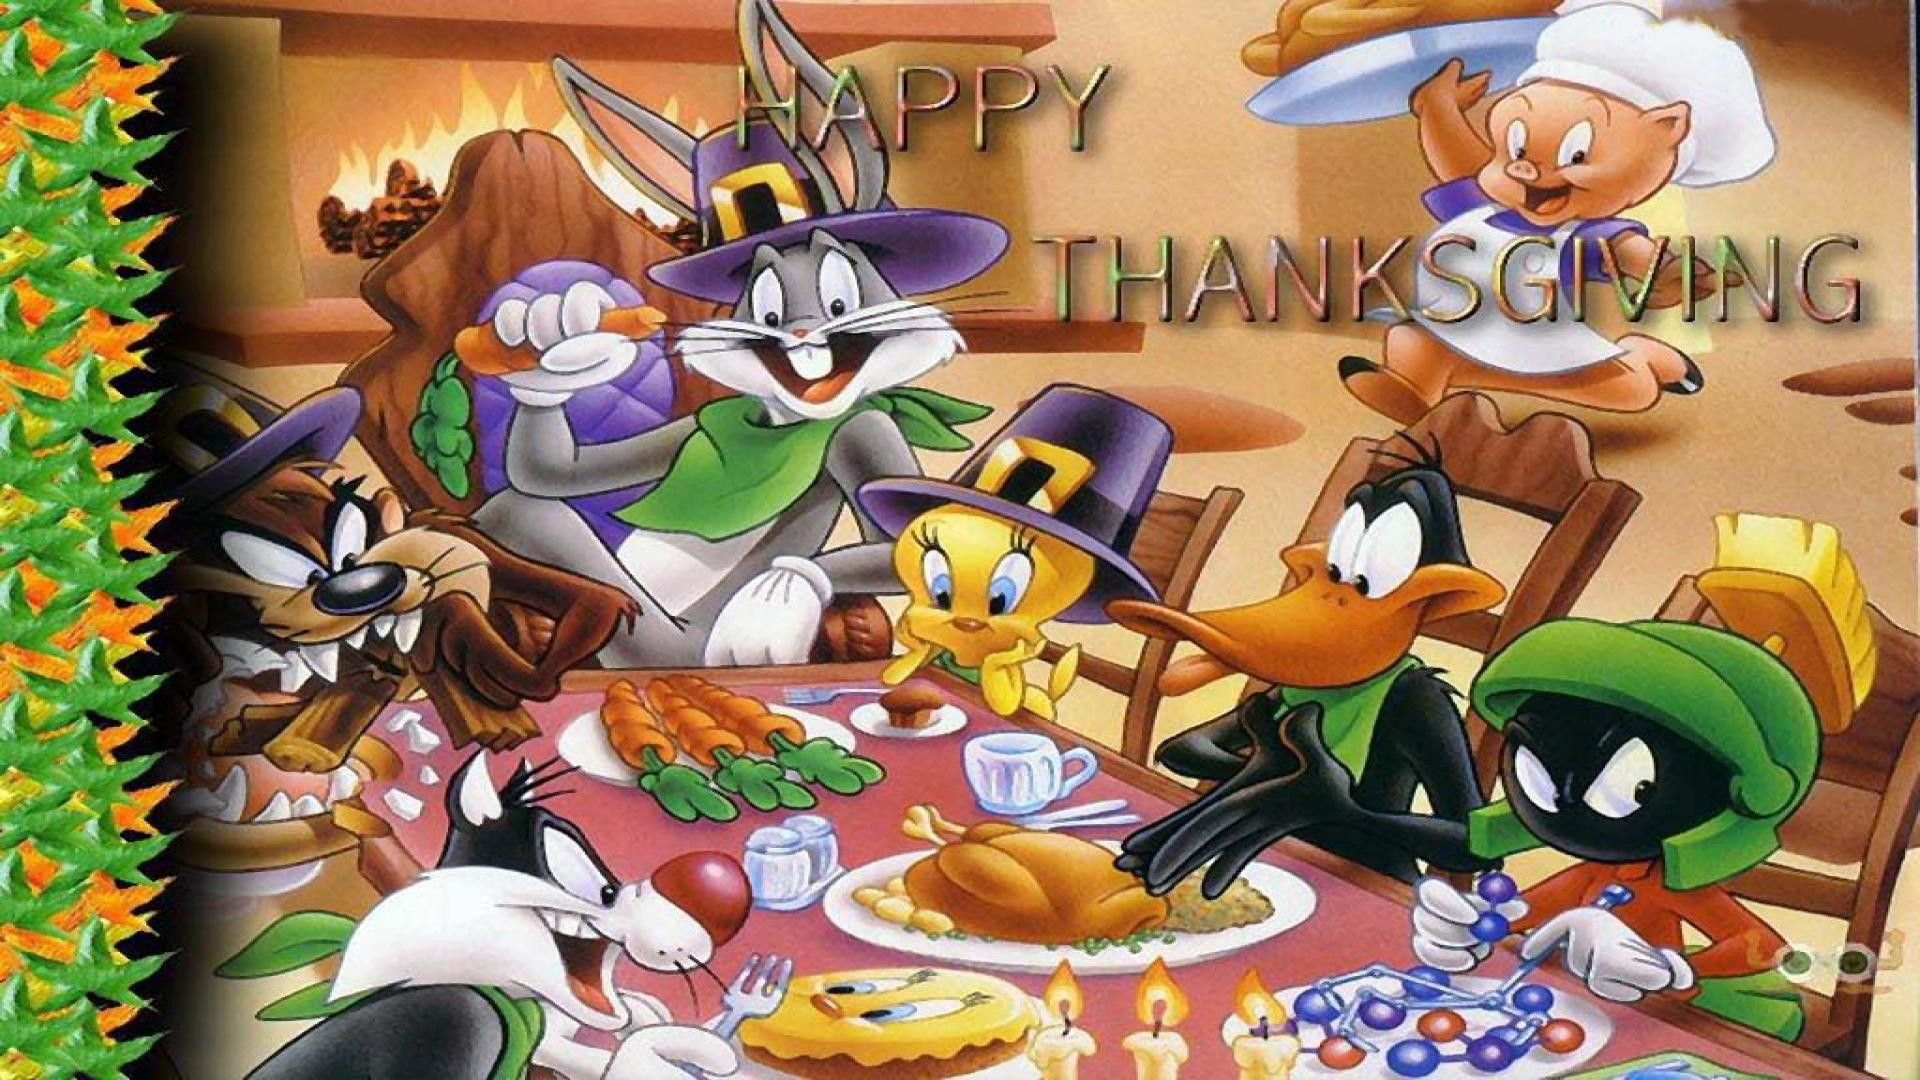 1920x1080 Thanksgiving Wallpapers Cartoon.